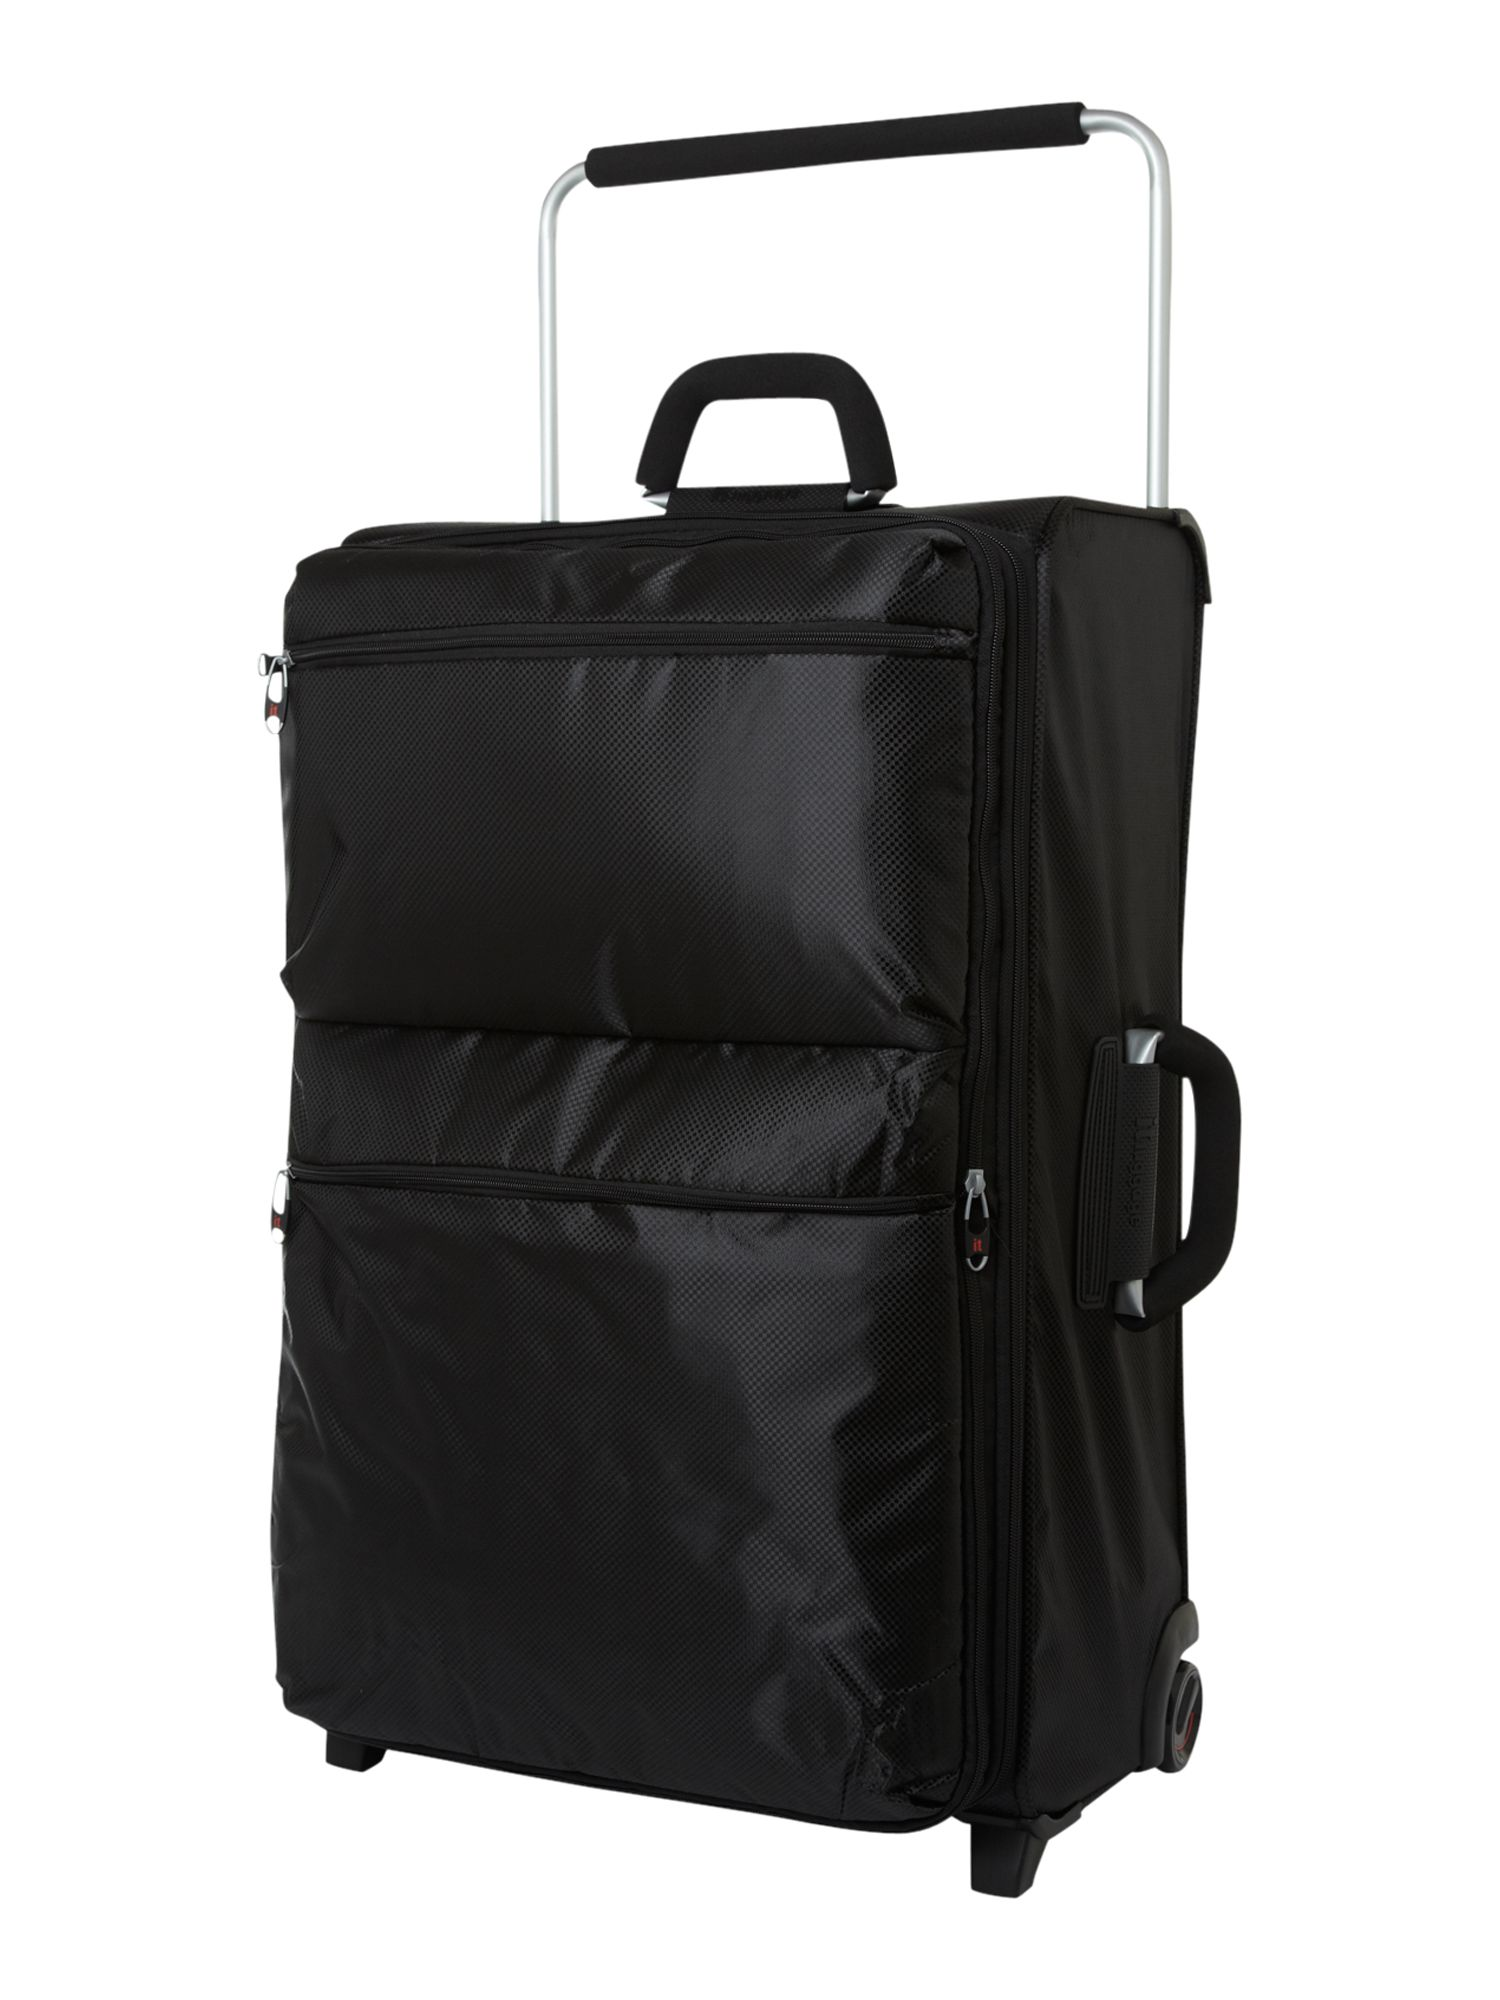 IT-02 luggage range